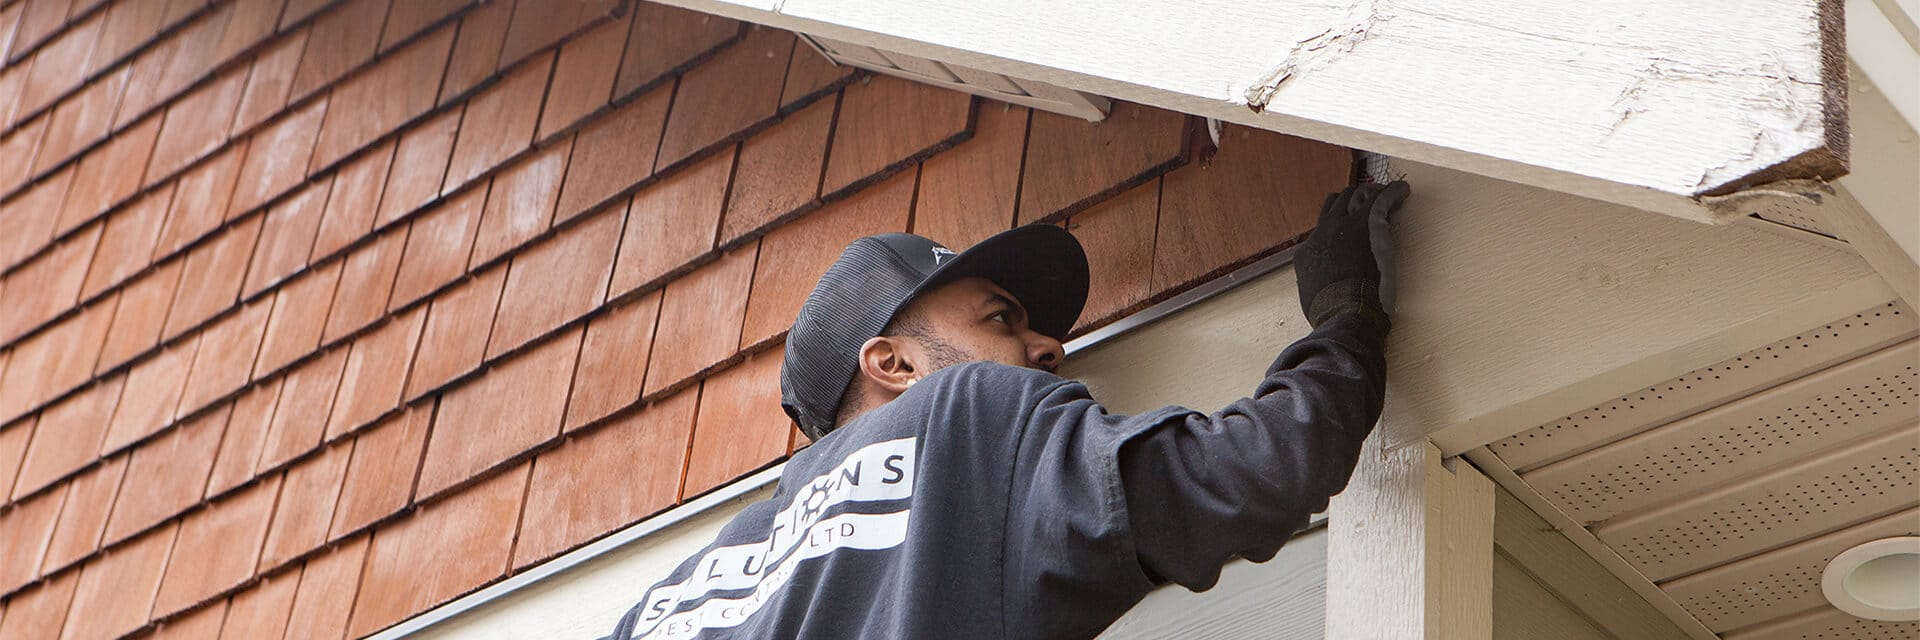 Solutions Pest Control service tech inspecting roof line